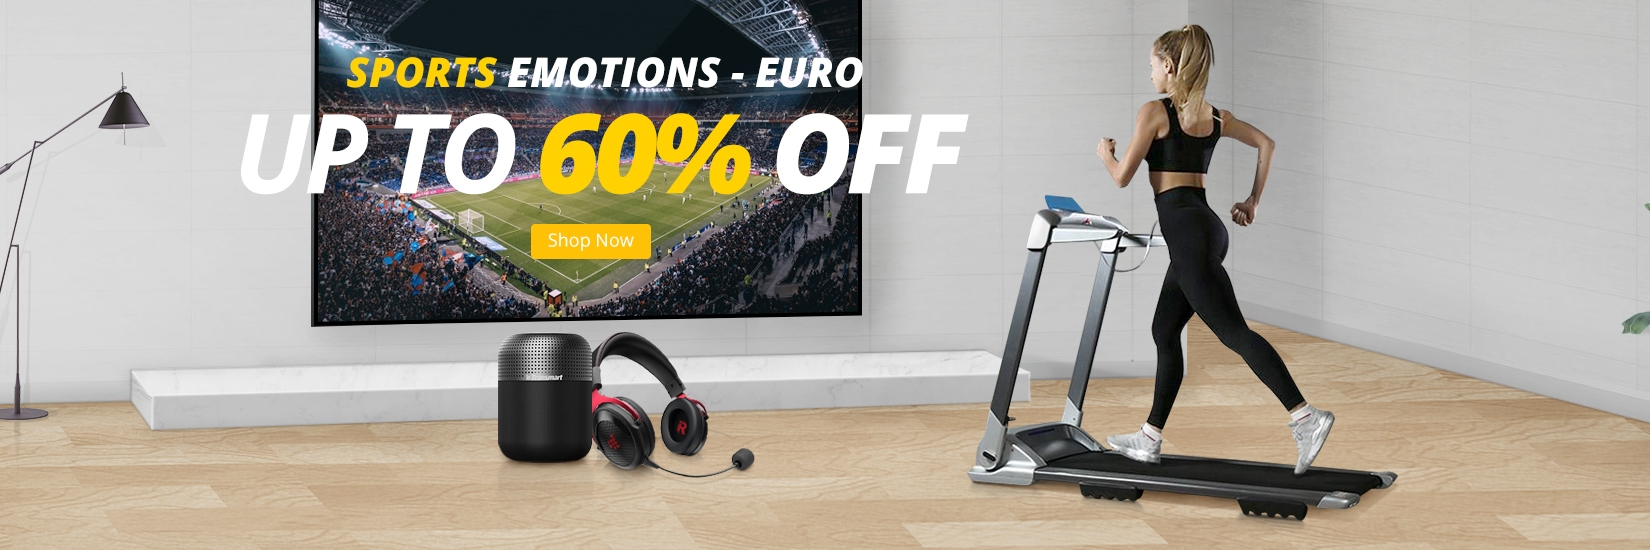 Sports Emotions EU - Up to 60% off